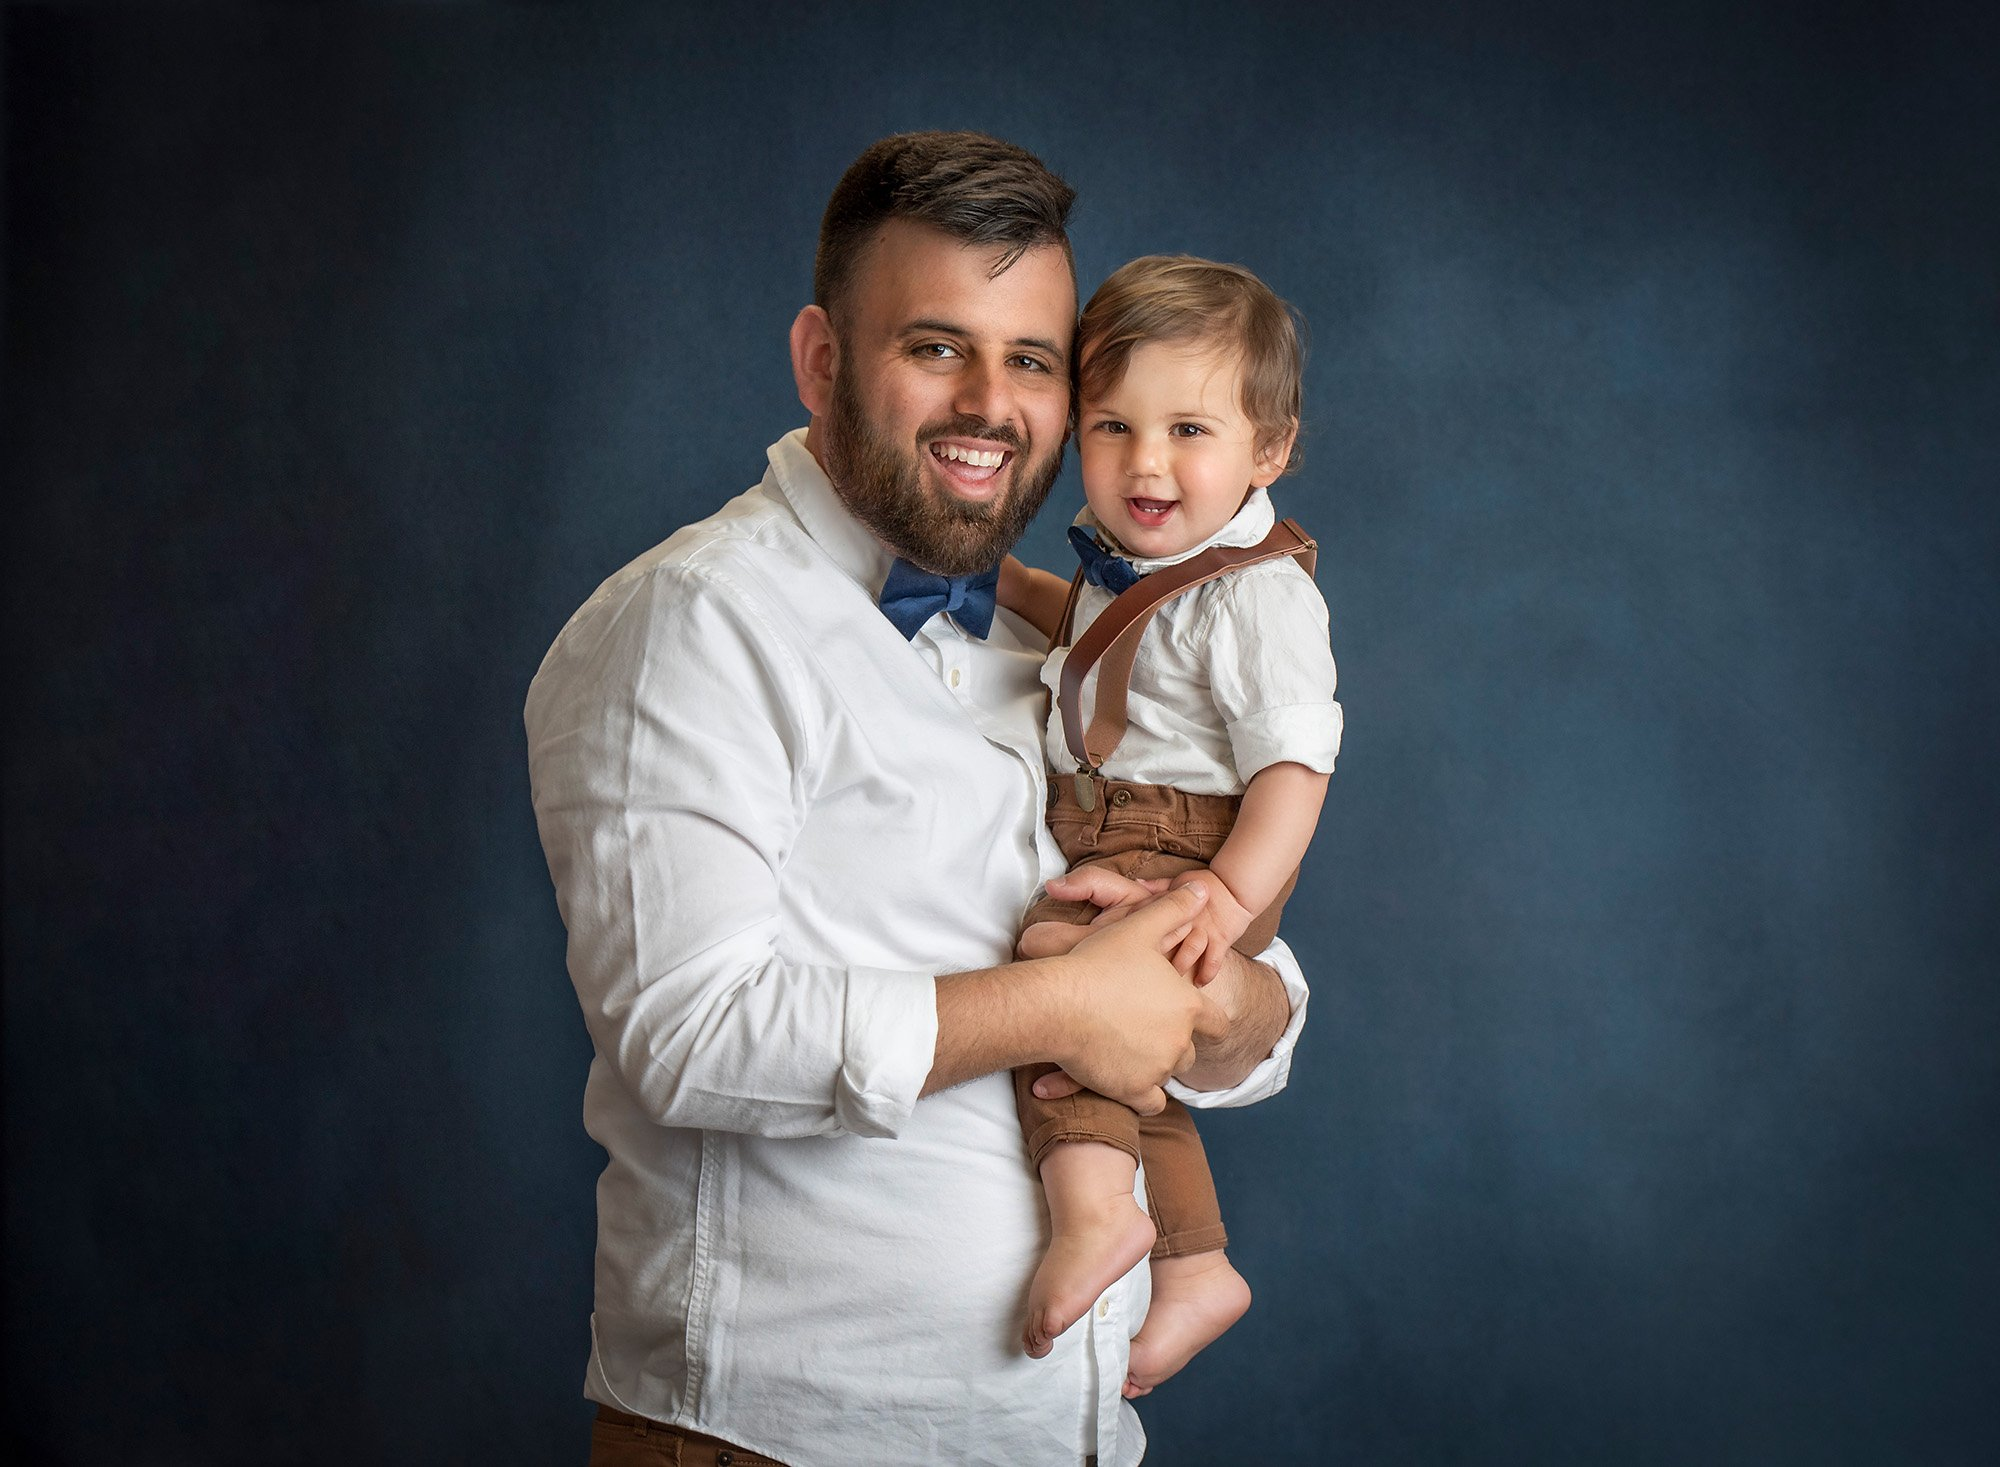 one year old boy in overalls smiling while being held by his dad on a blue background